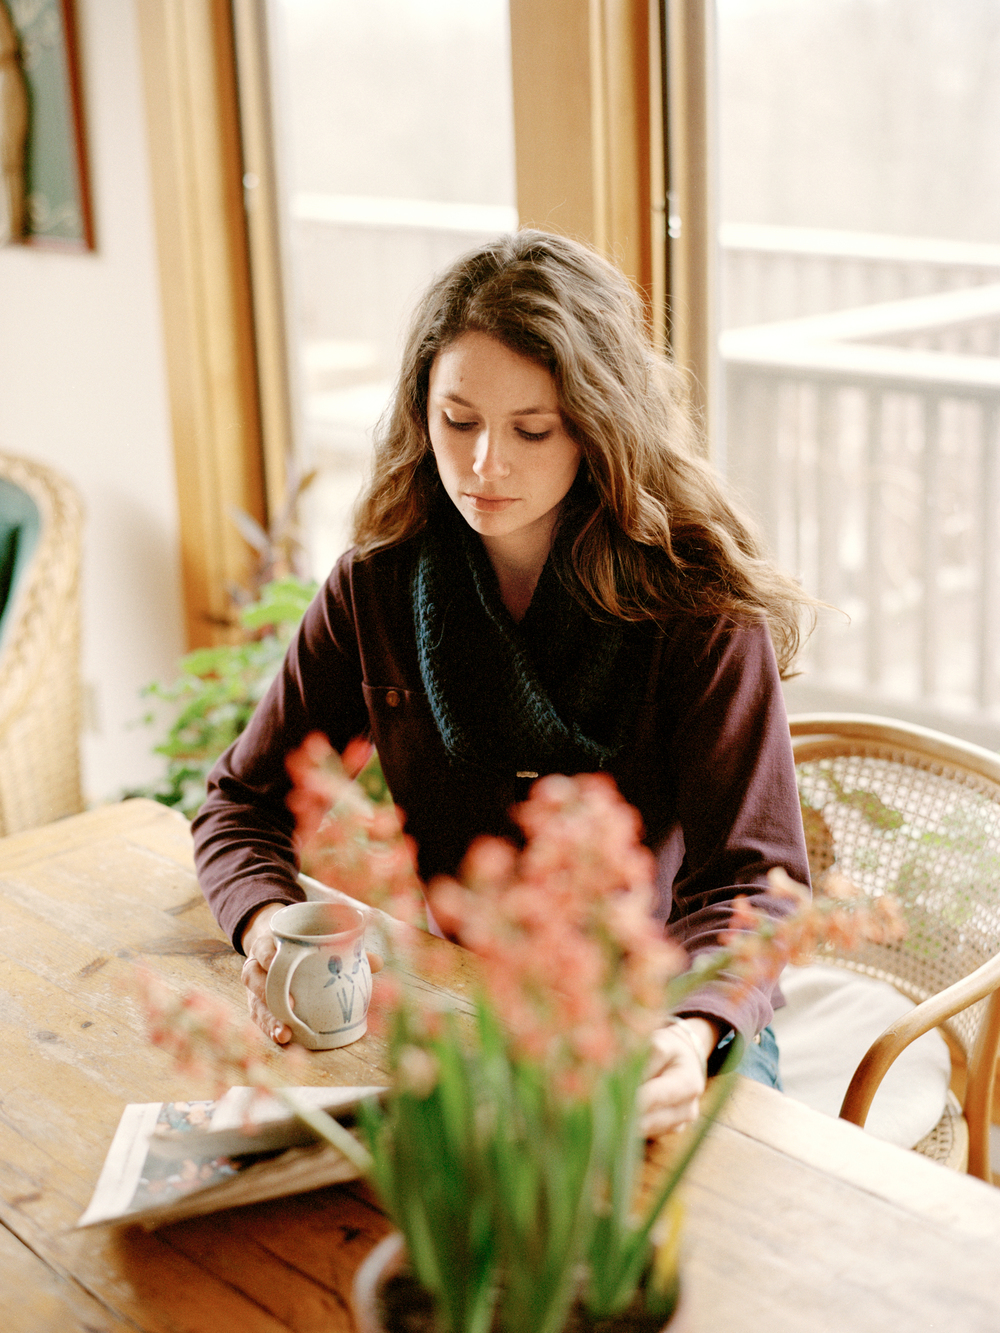 Molly Marquand,  Wilder Quarterly 's Horticultural Editor